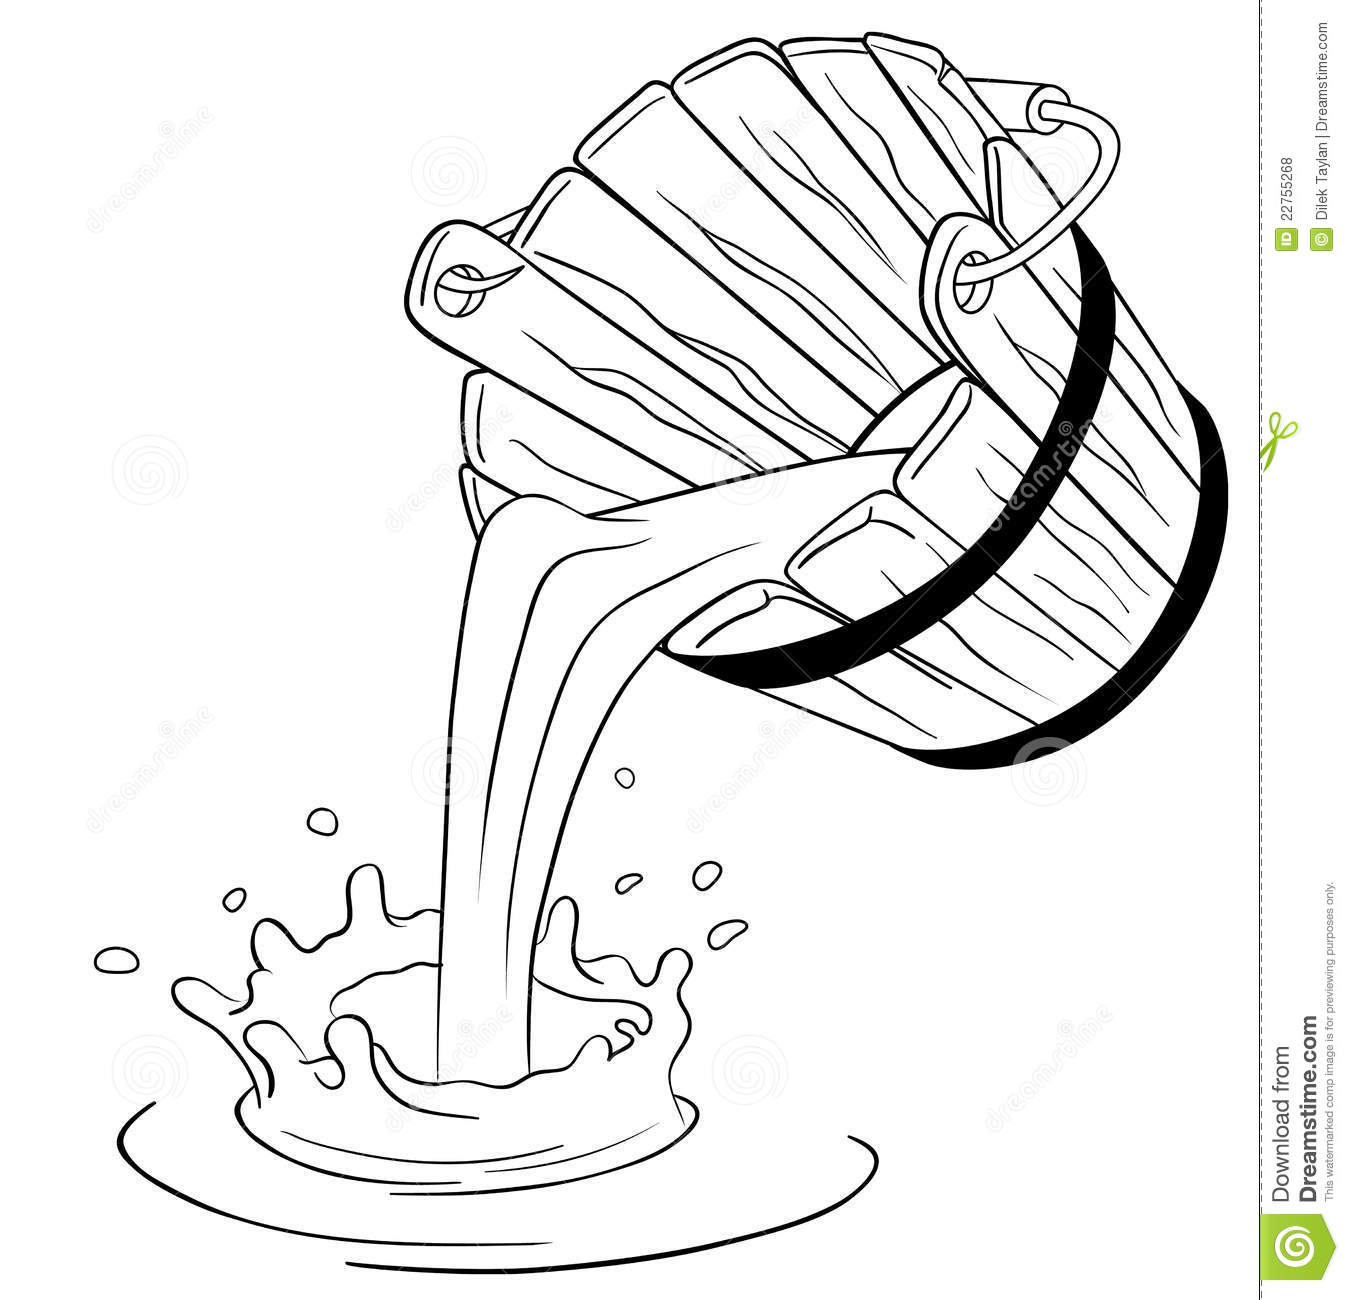 Pouring Milk From Bucket Royalty Free Stock Photos - Image: 22755268